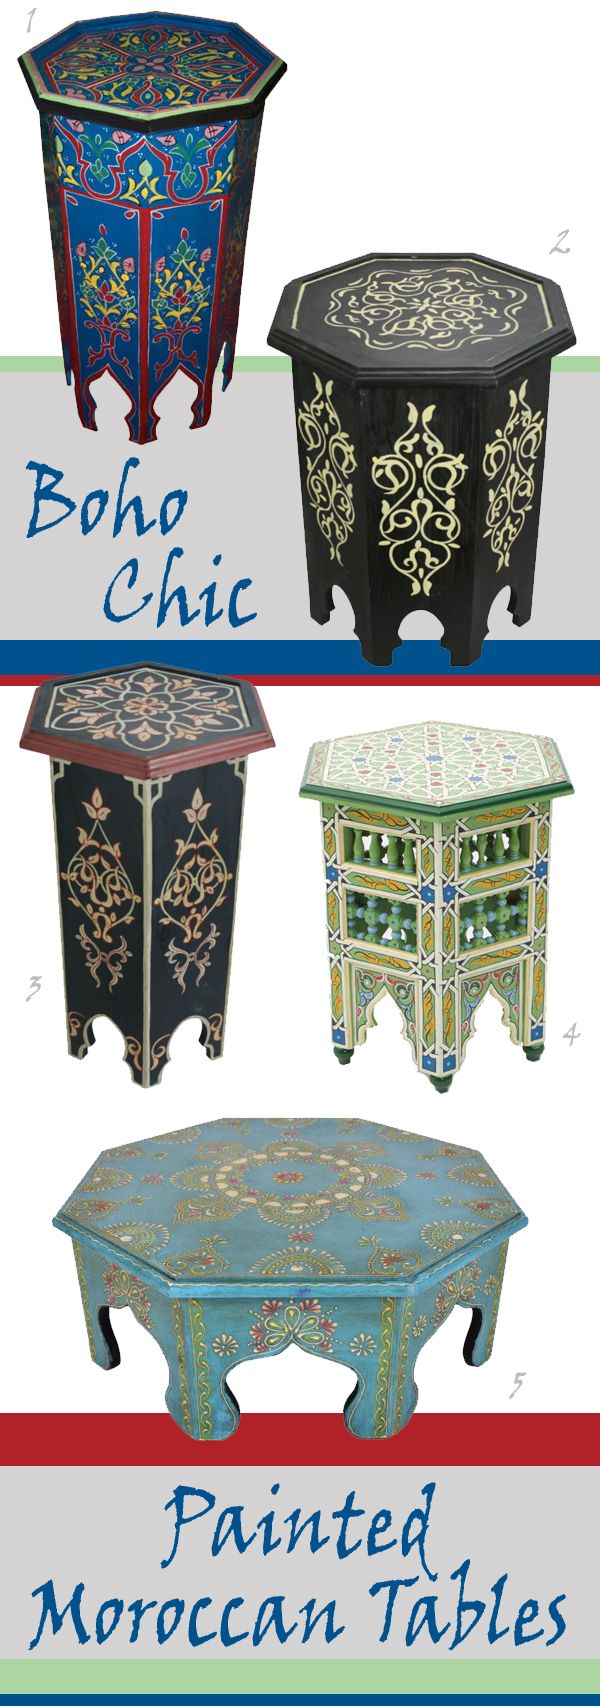 Nomadic Decorator   Painted Moroccan Tables   http://nomadicdecorator.com